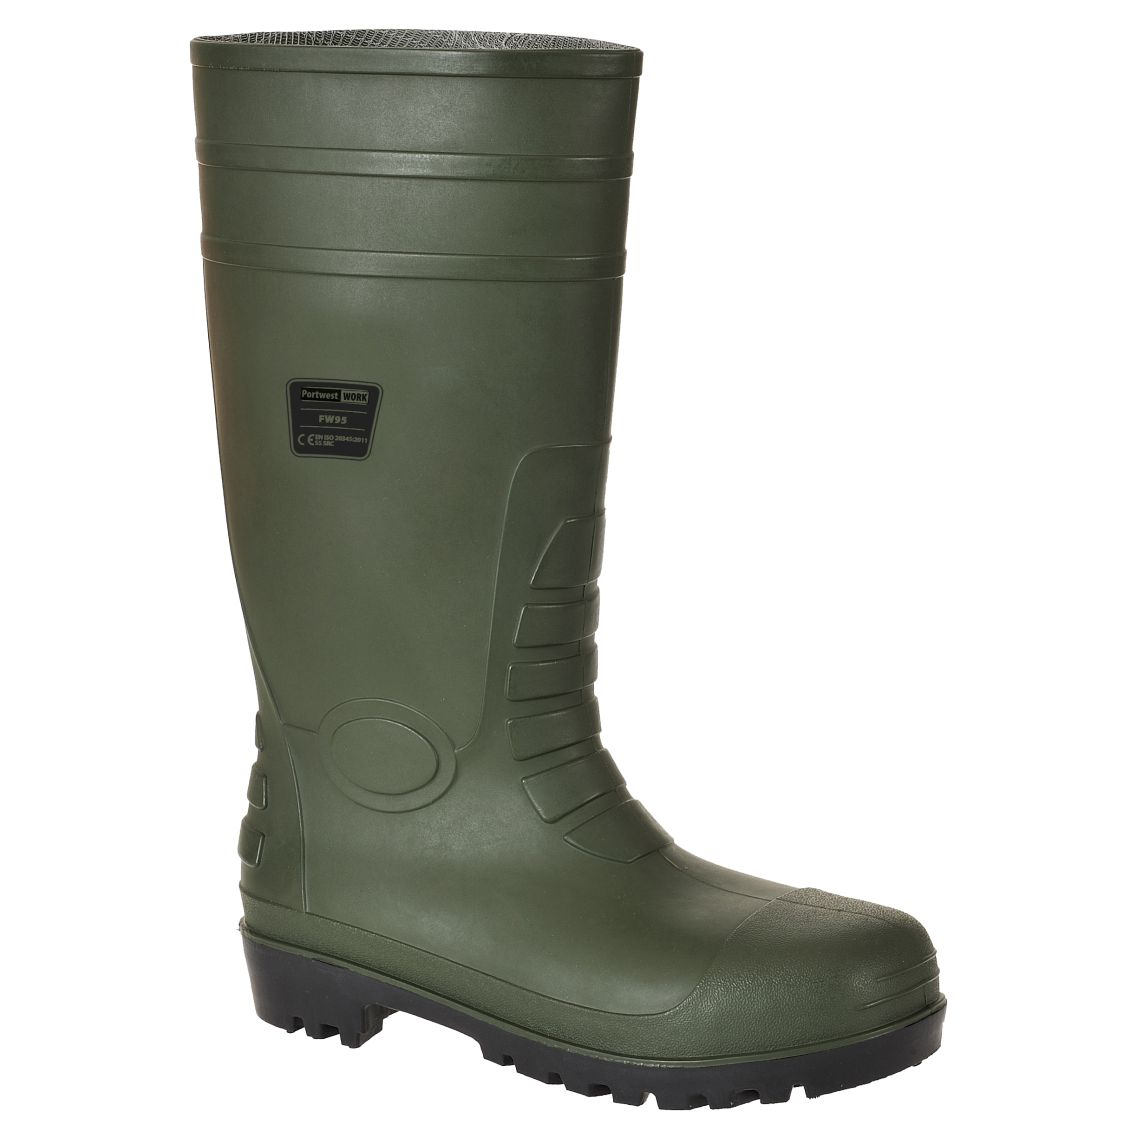 Portwest Safety Wellingtons